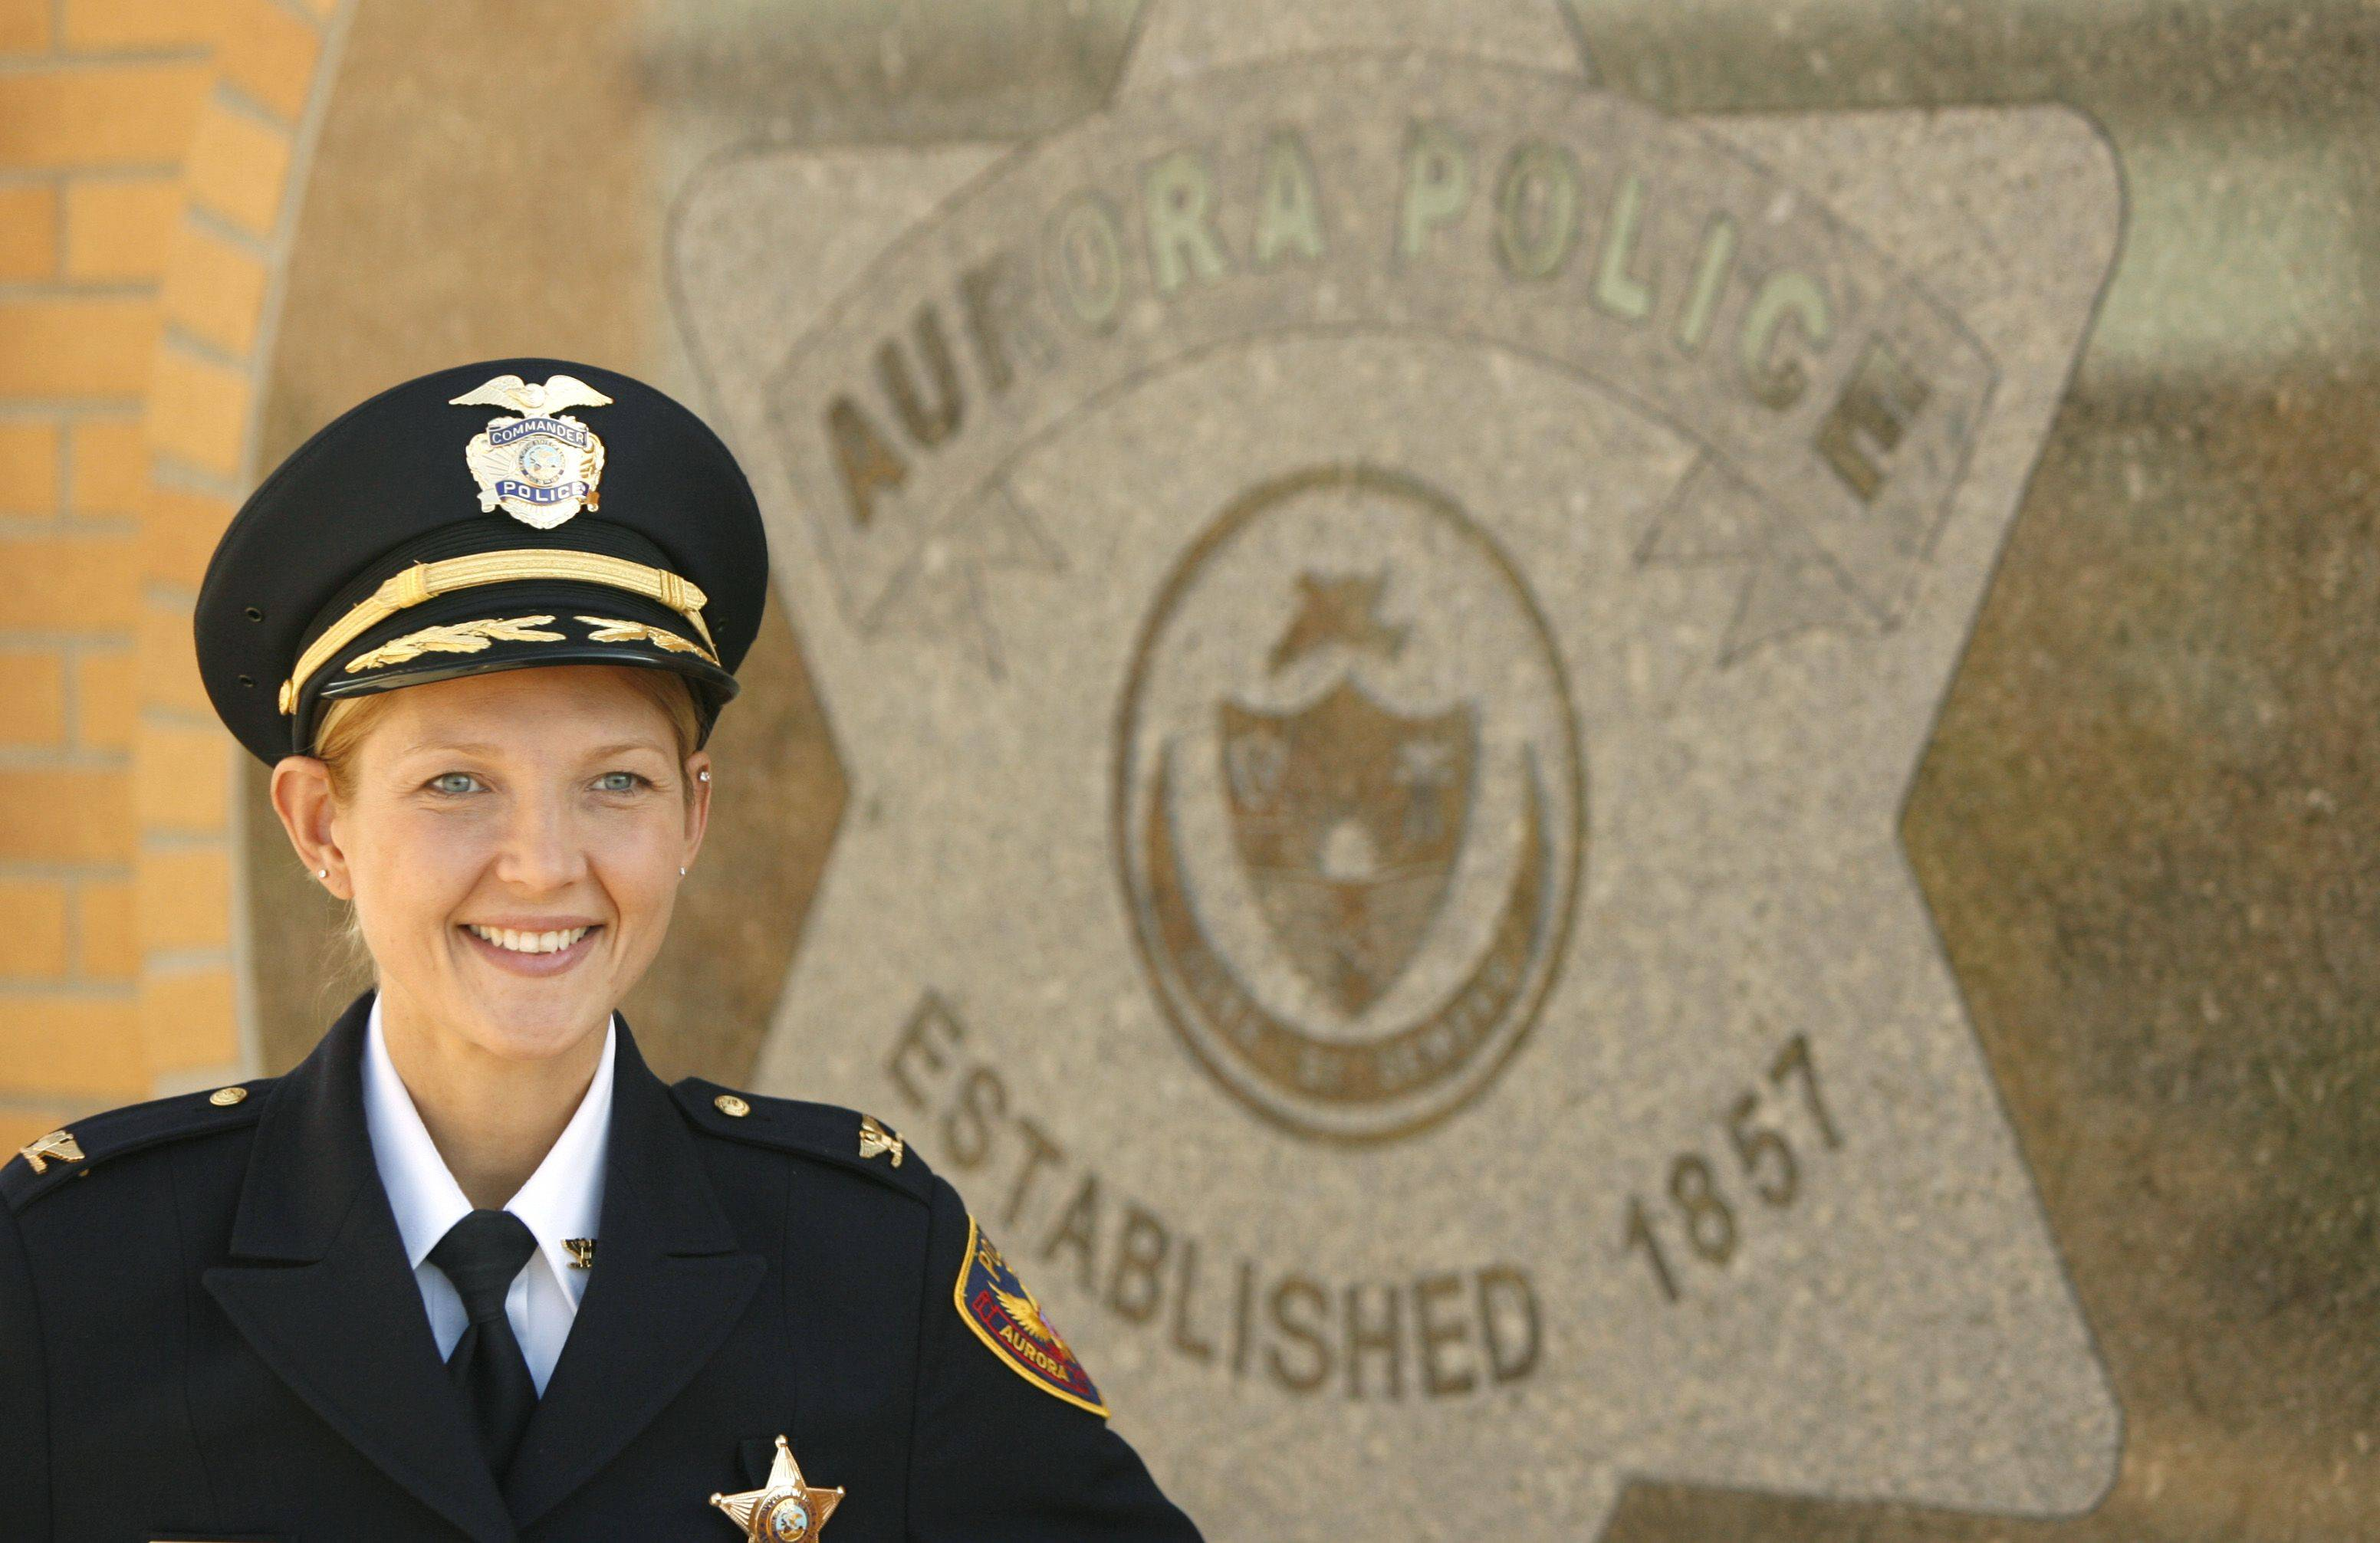 Kristen Ziman is the first woman to rise to the rank of commander in the Aurora Police Department.